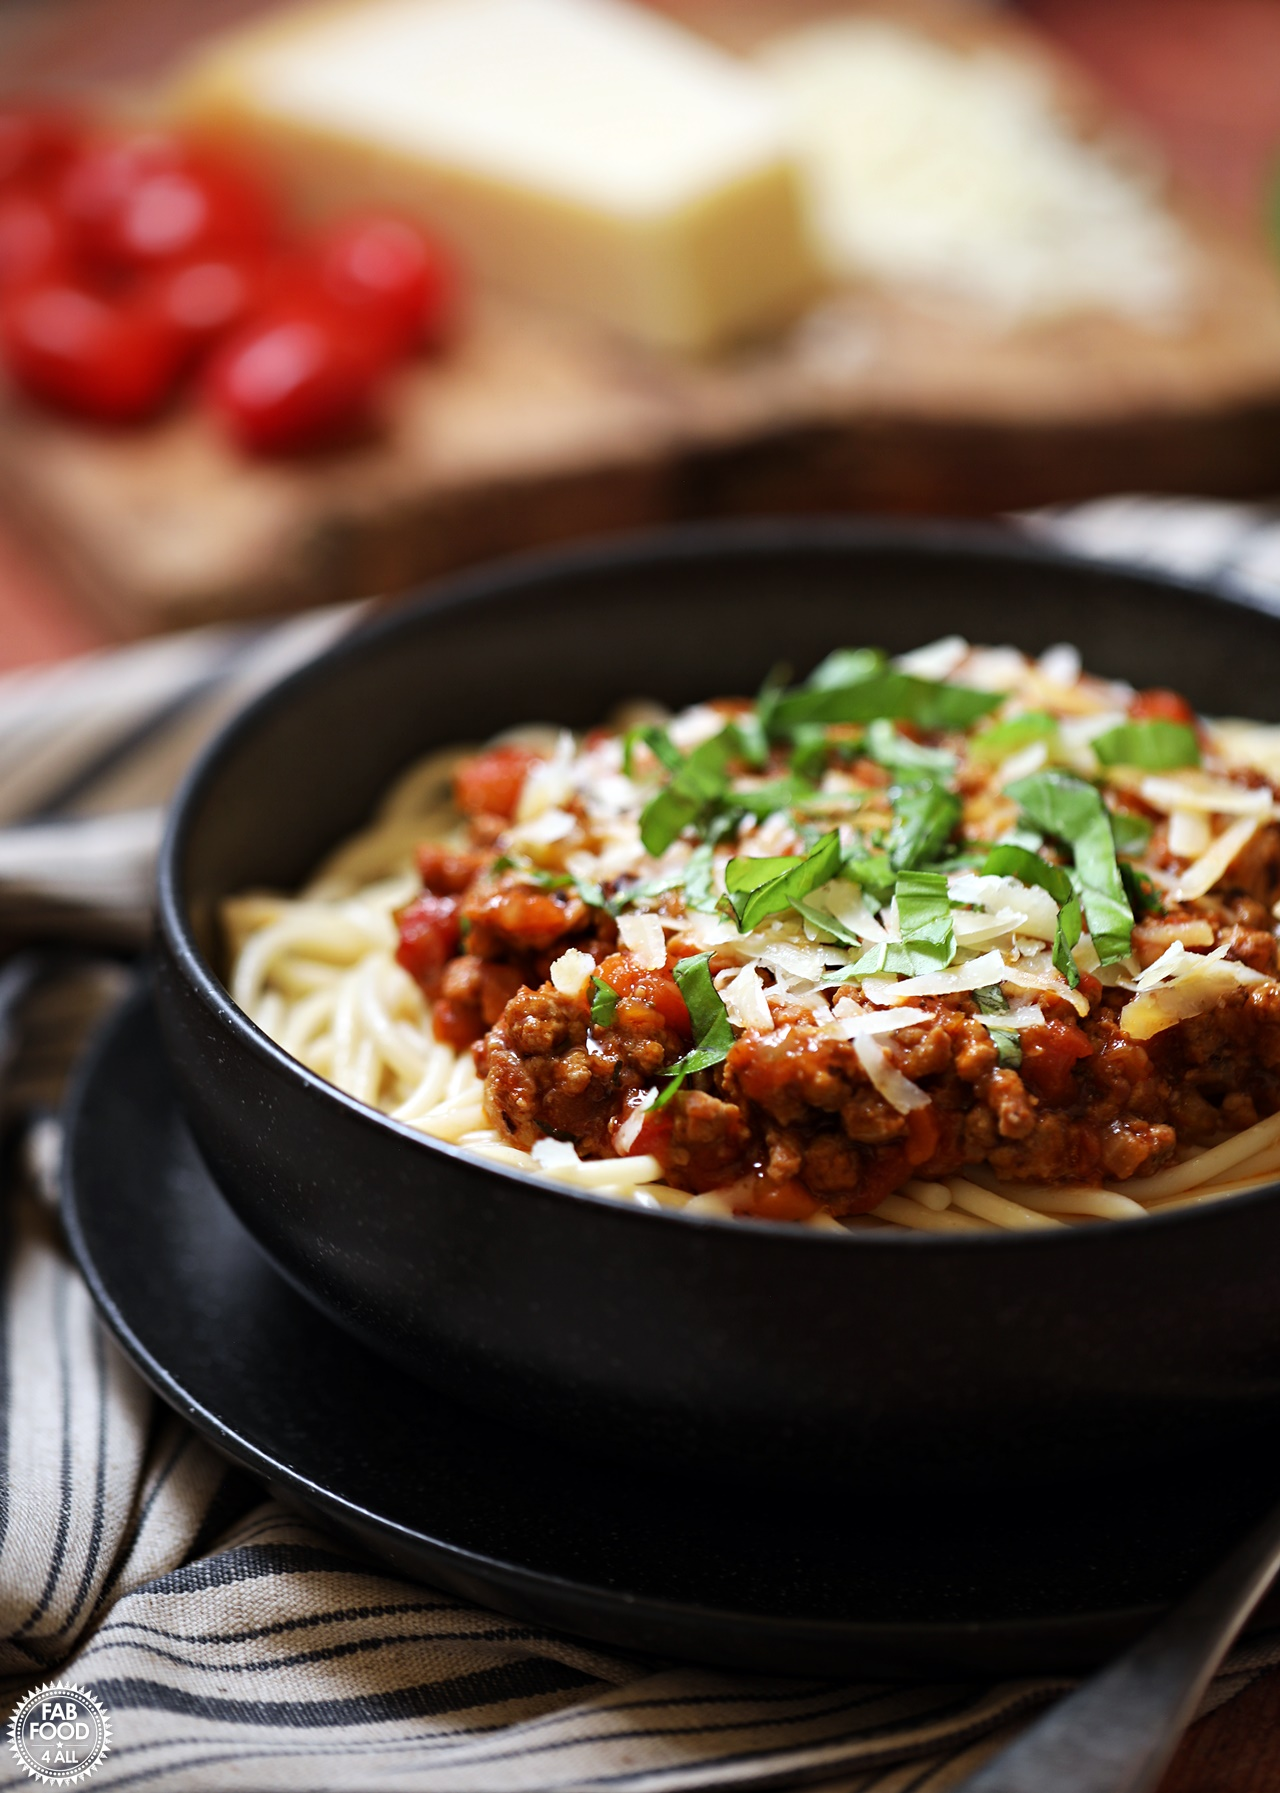 Turkey Bolognese in a bowl with spaghetti & grated parmesan with tomatoes and Parmesan cheese in background.